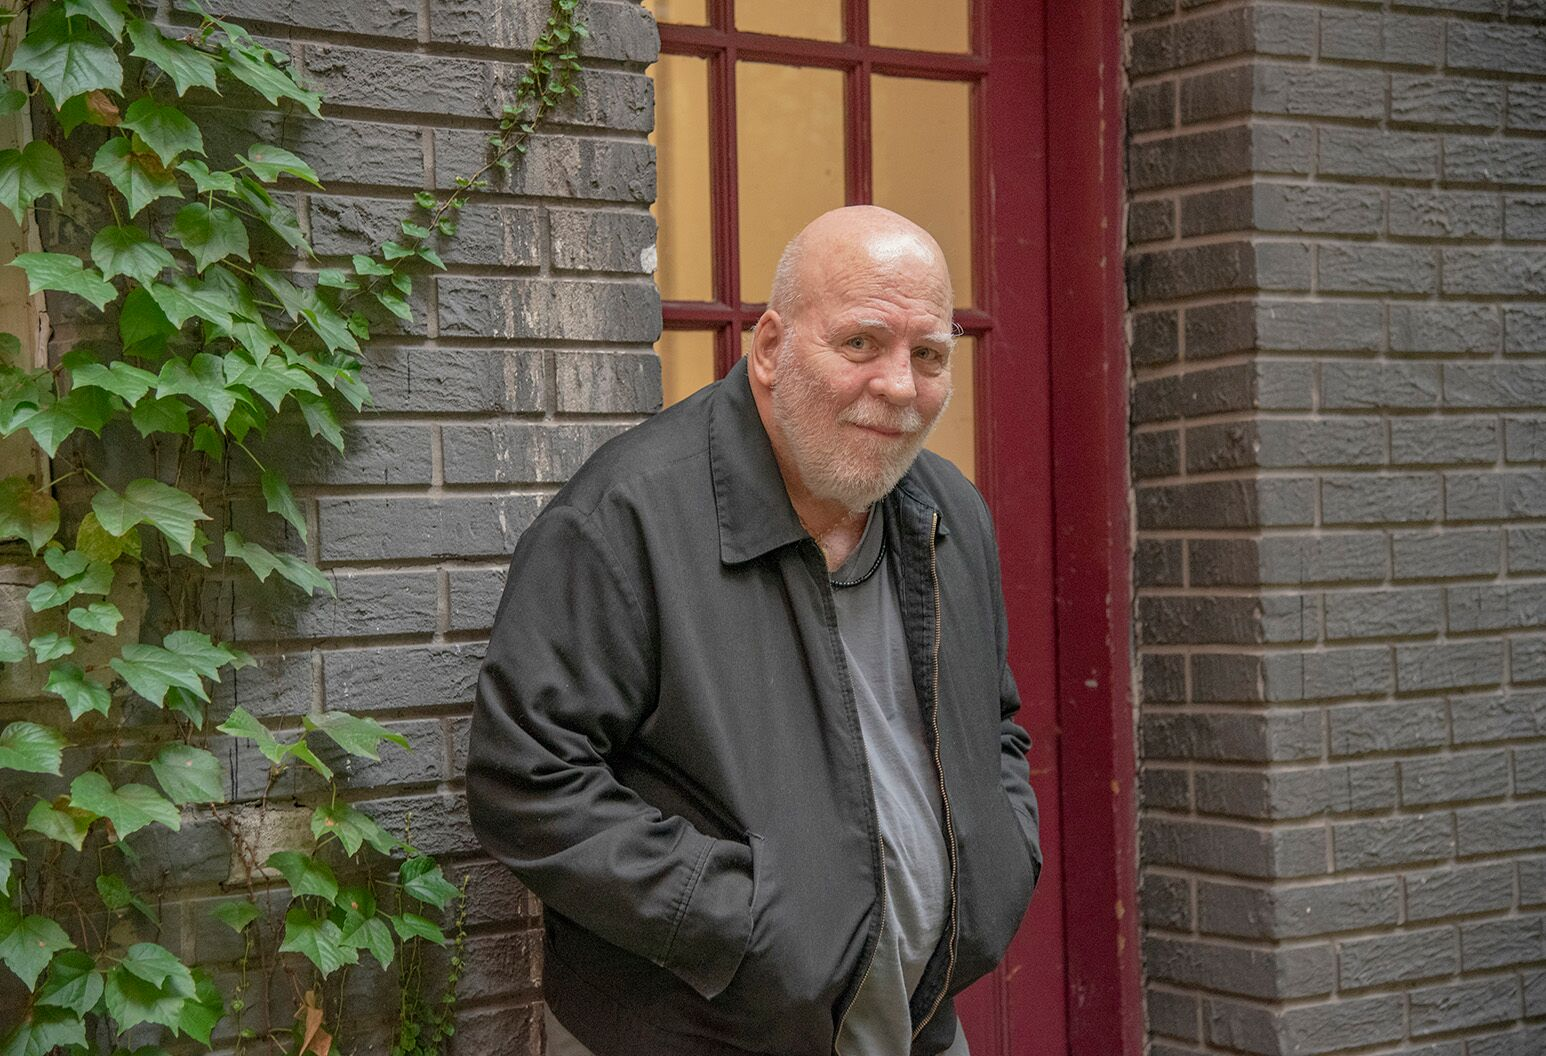 Older man in a dark gray coat, leaning against a brick wall and red door with his hands in pockets.